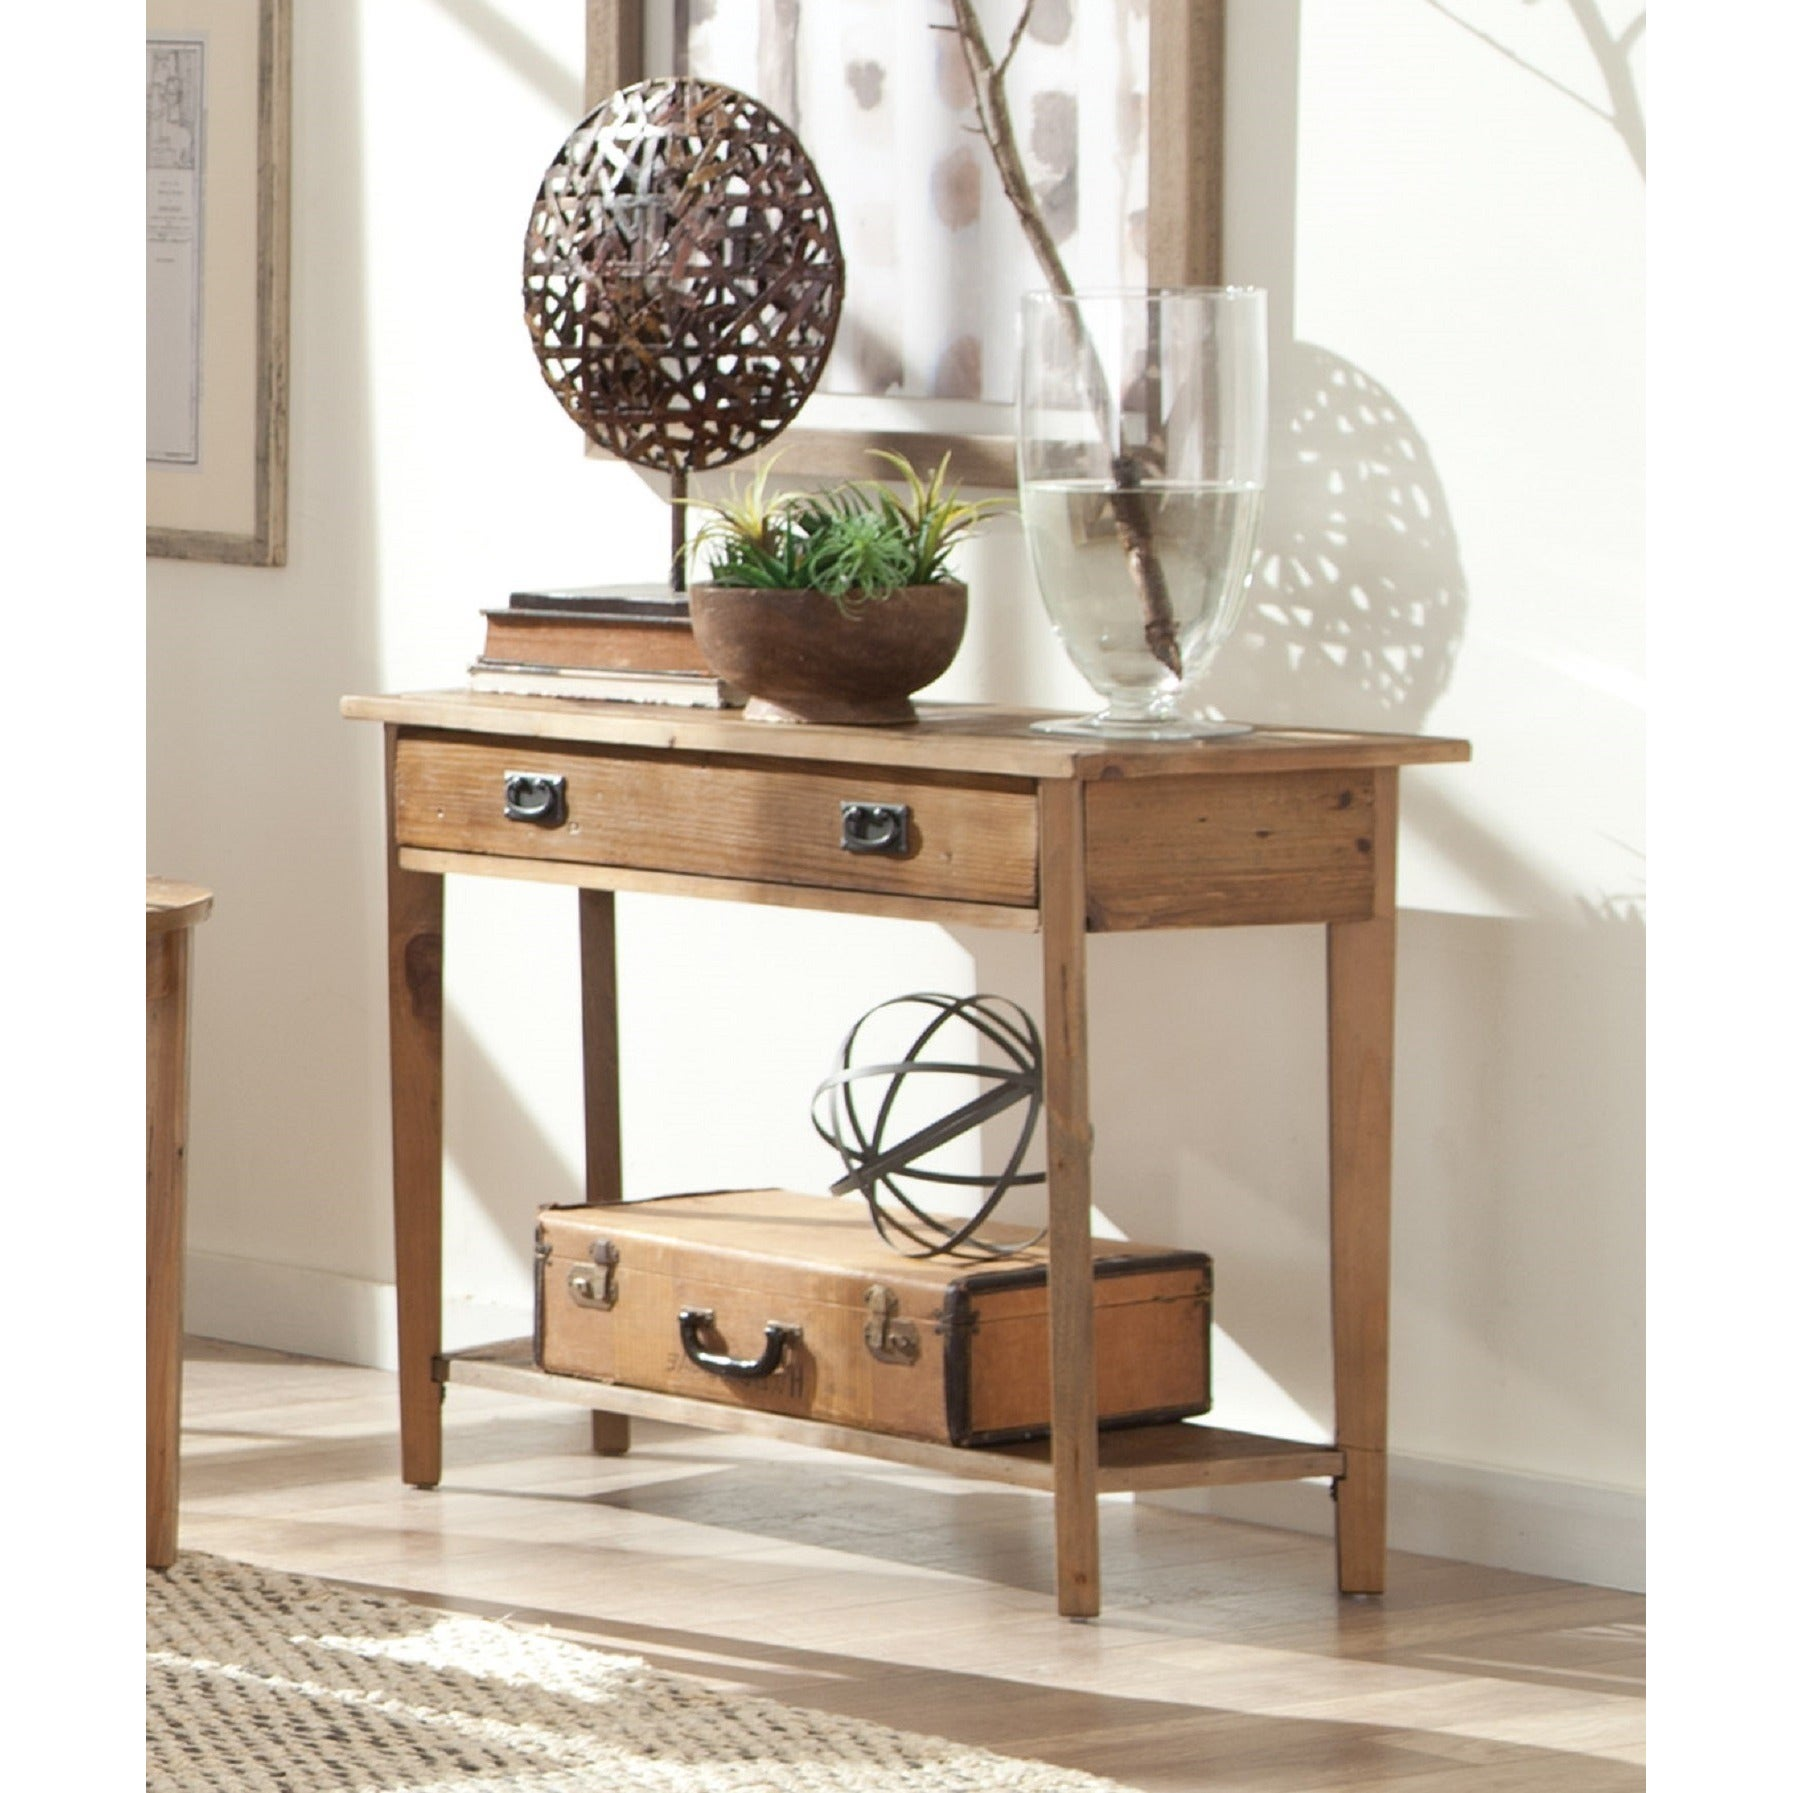 Shop Pine Canopy Pinnacles Reclaimed Wood Console Table